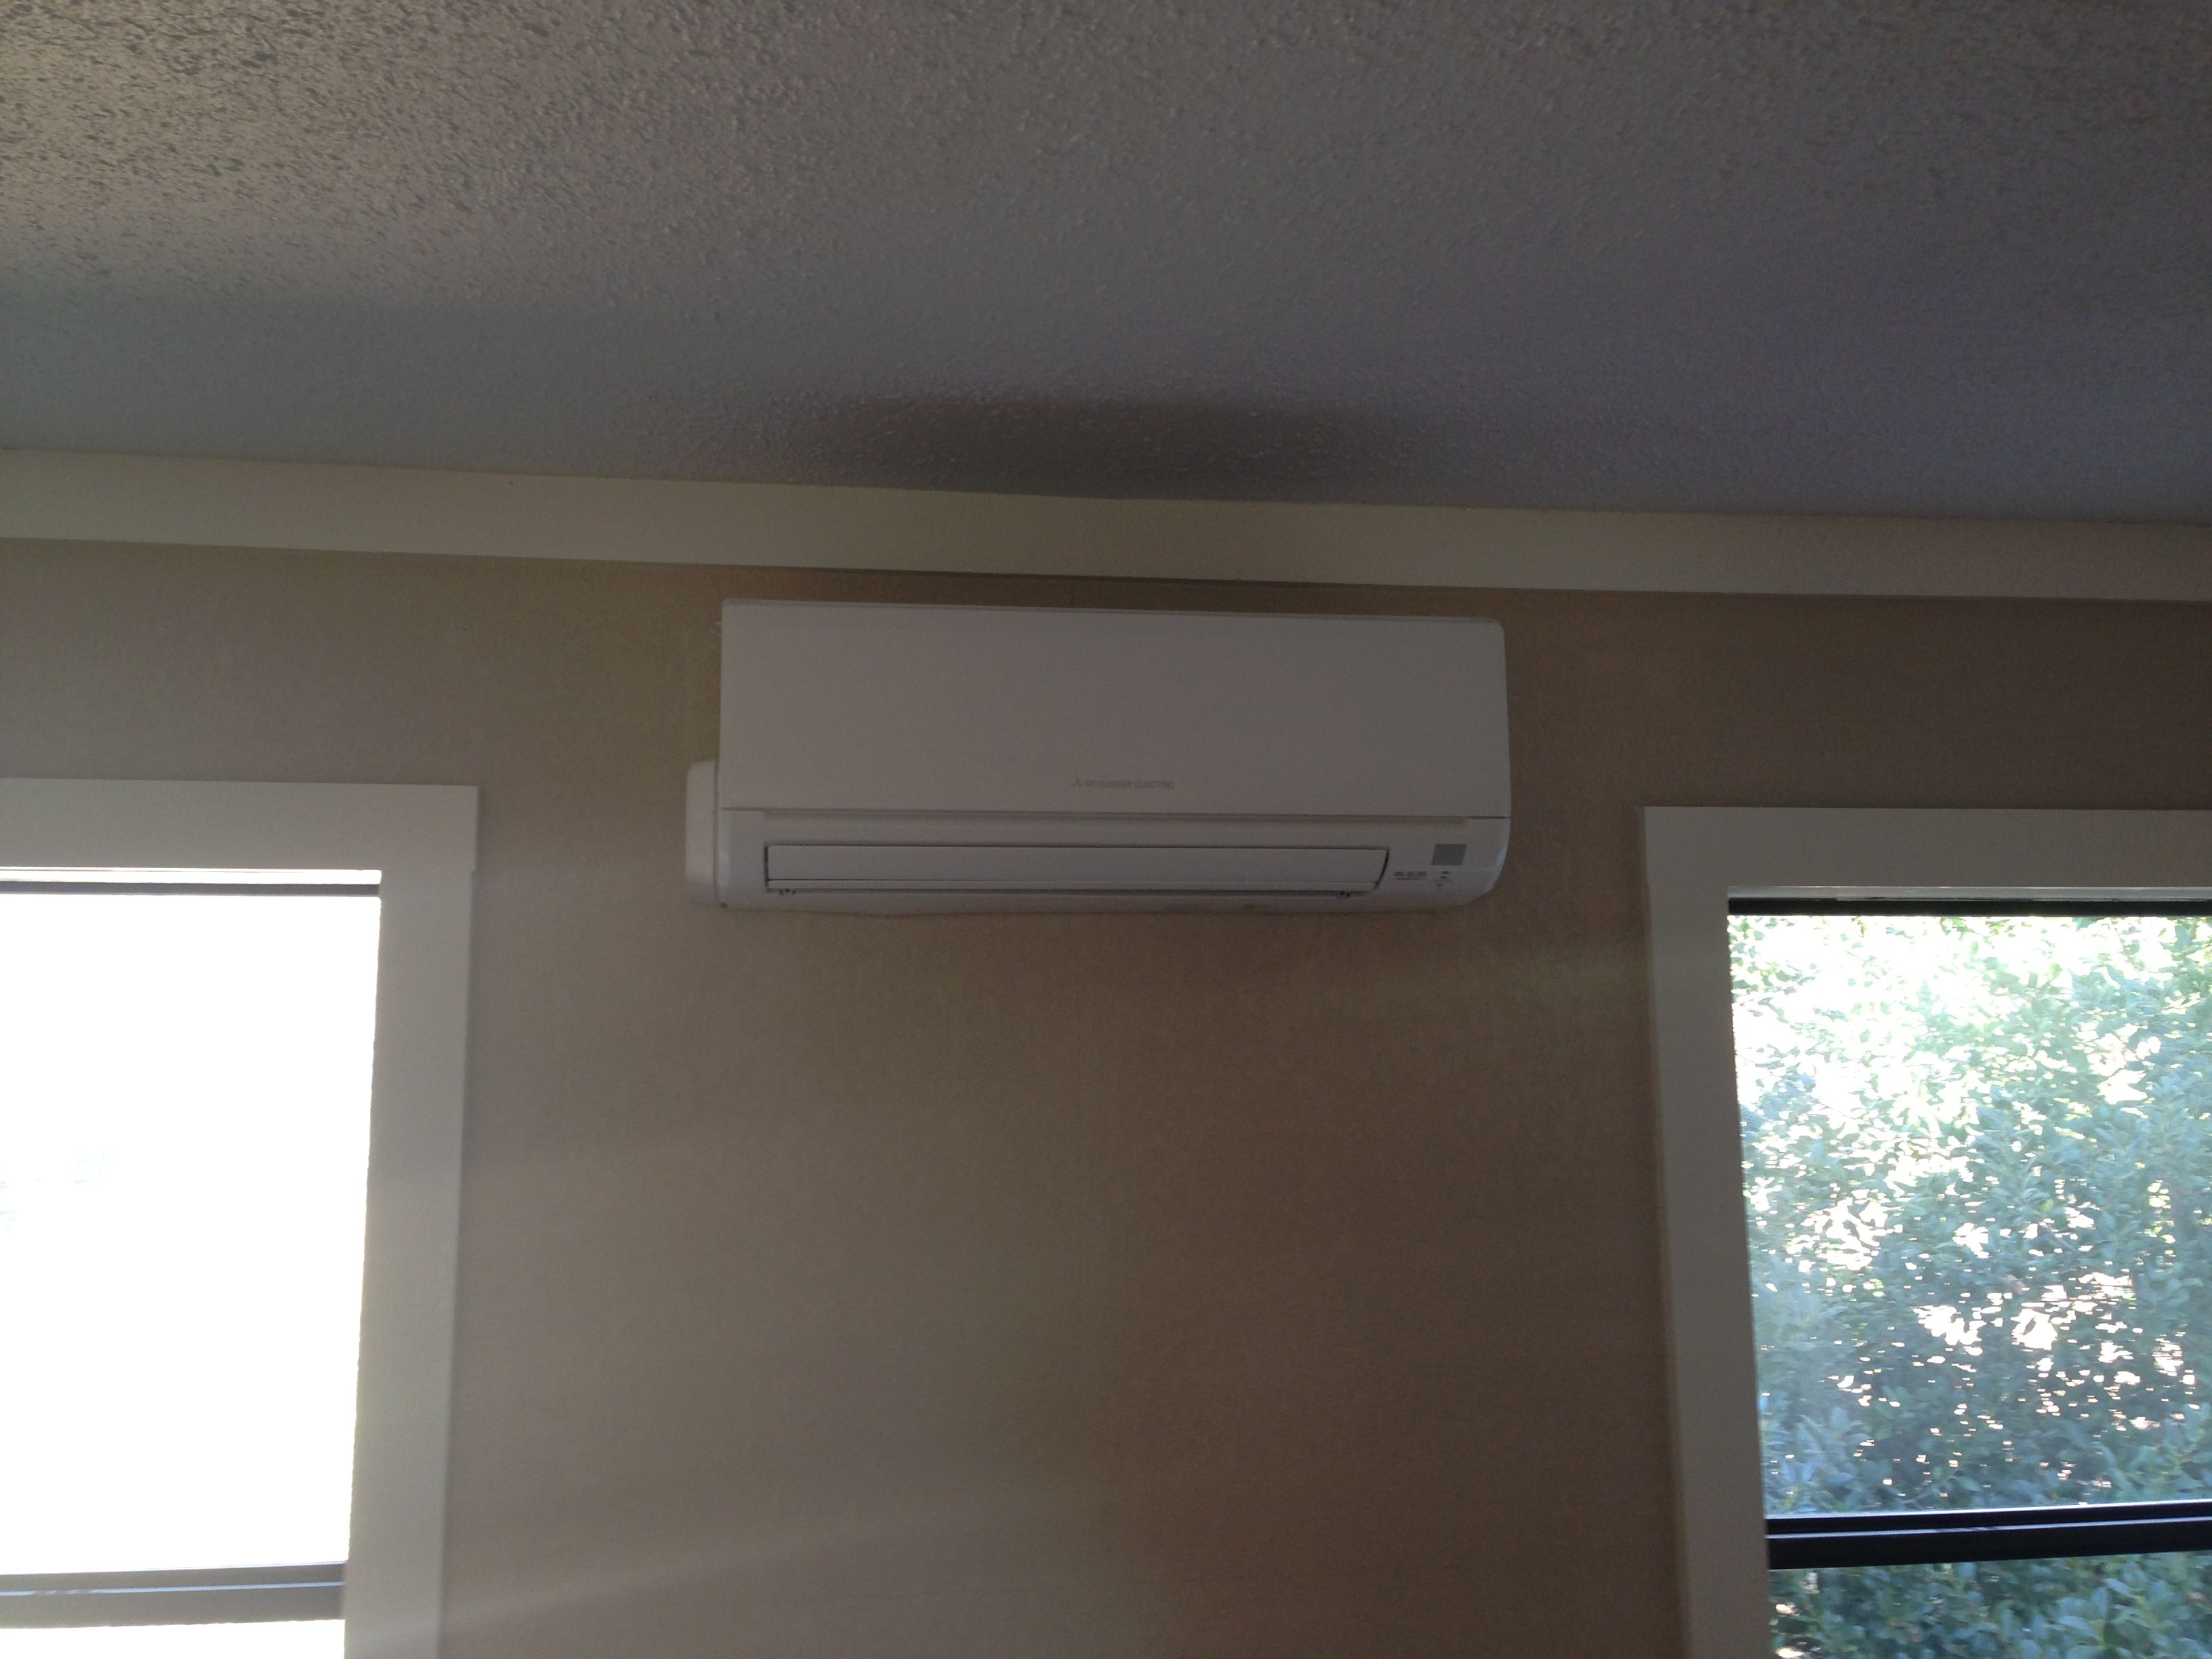 Mitsubishi Wall Mount Mzge12 A Heating And Air Conditioning Wall Mount Mitsubishi